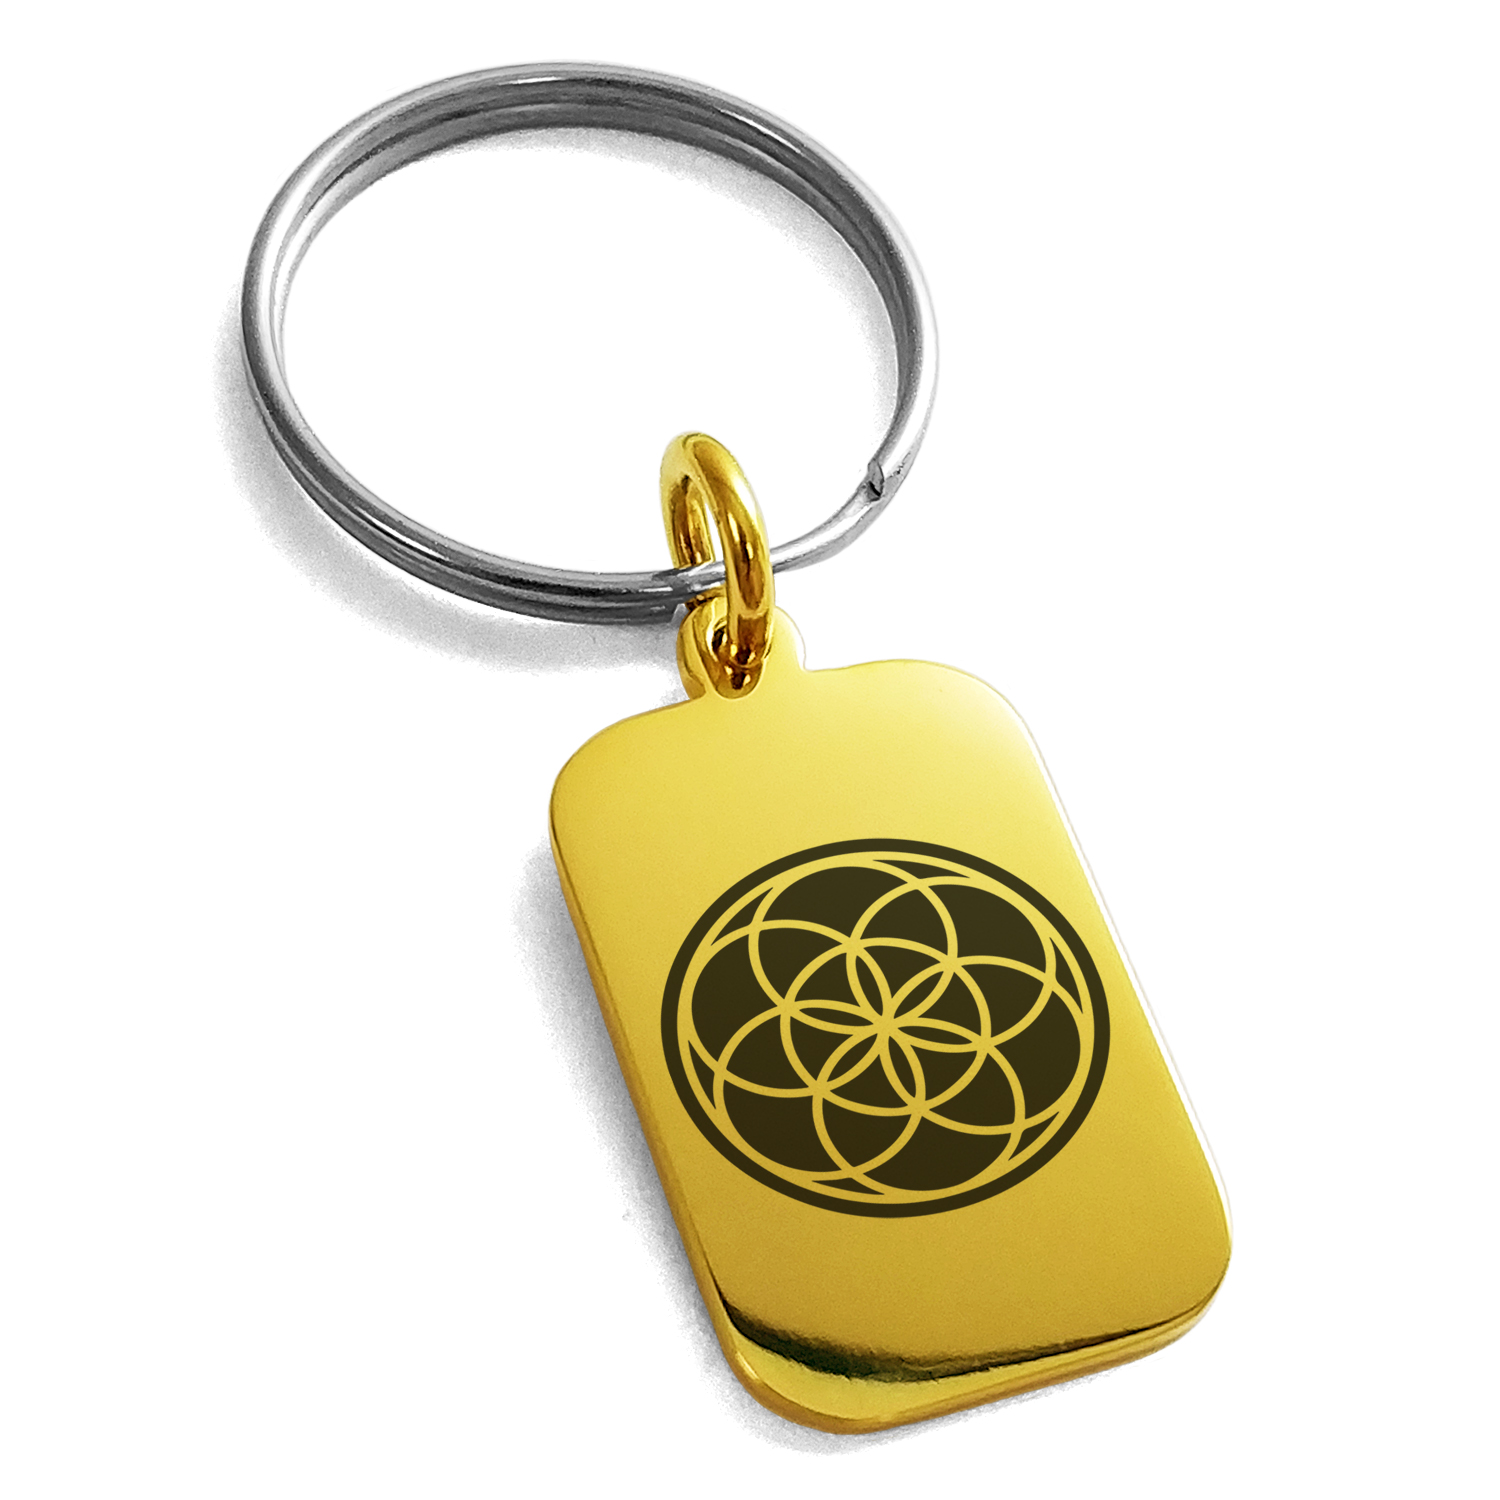 Stainless Steel Seed of Life Engraved Small Rectangle Dog Tag Charm Keychain Keyring